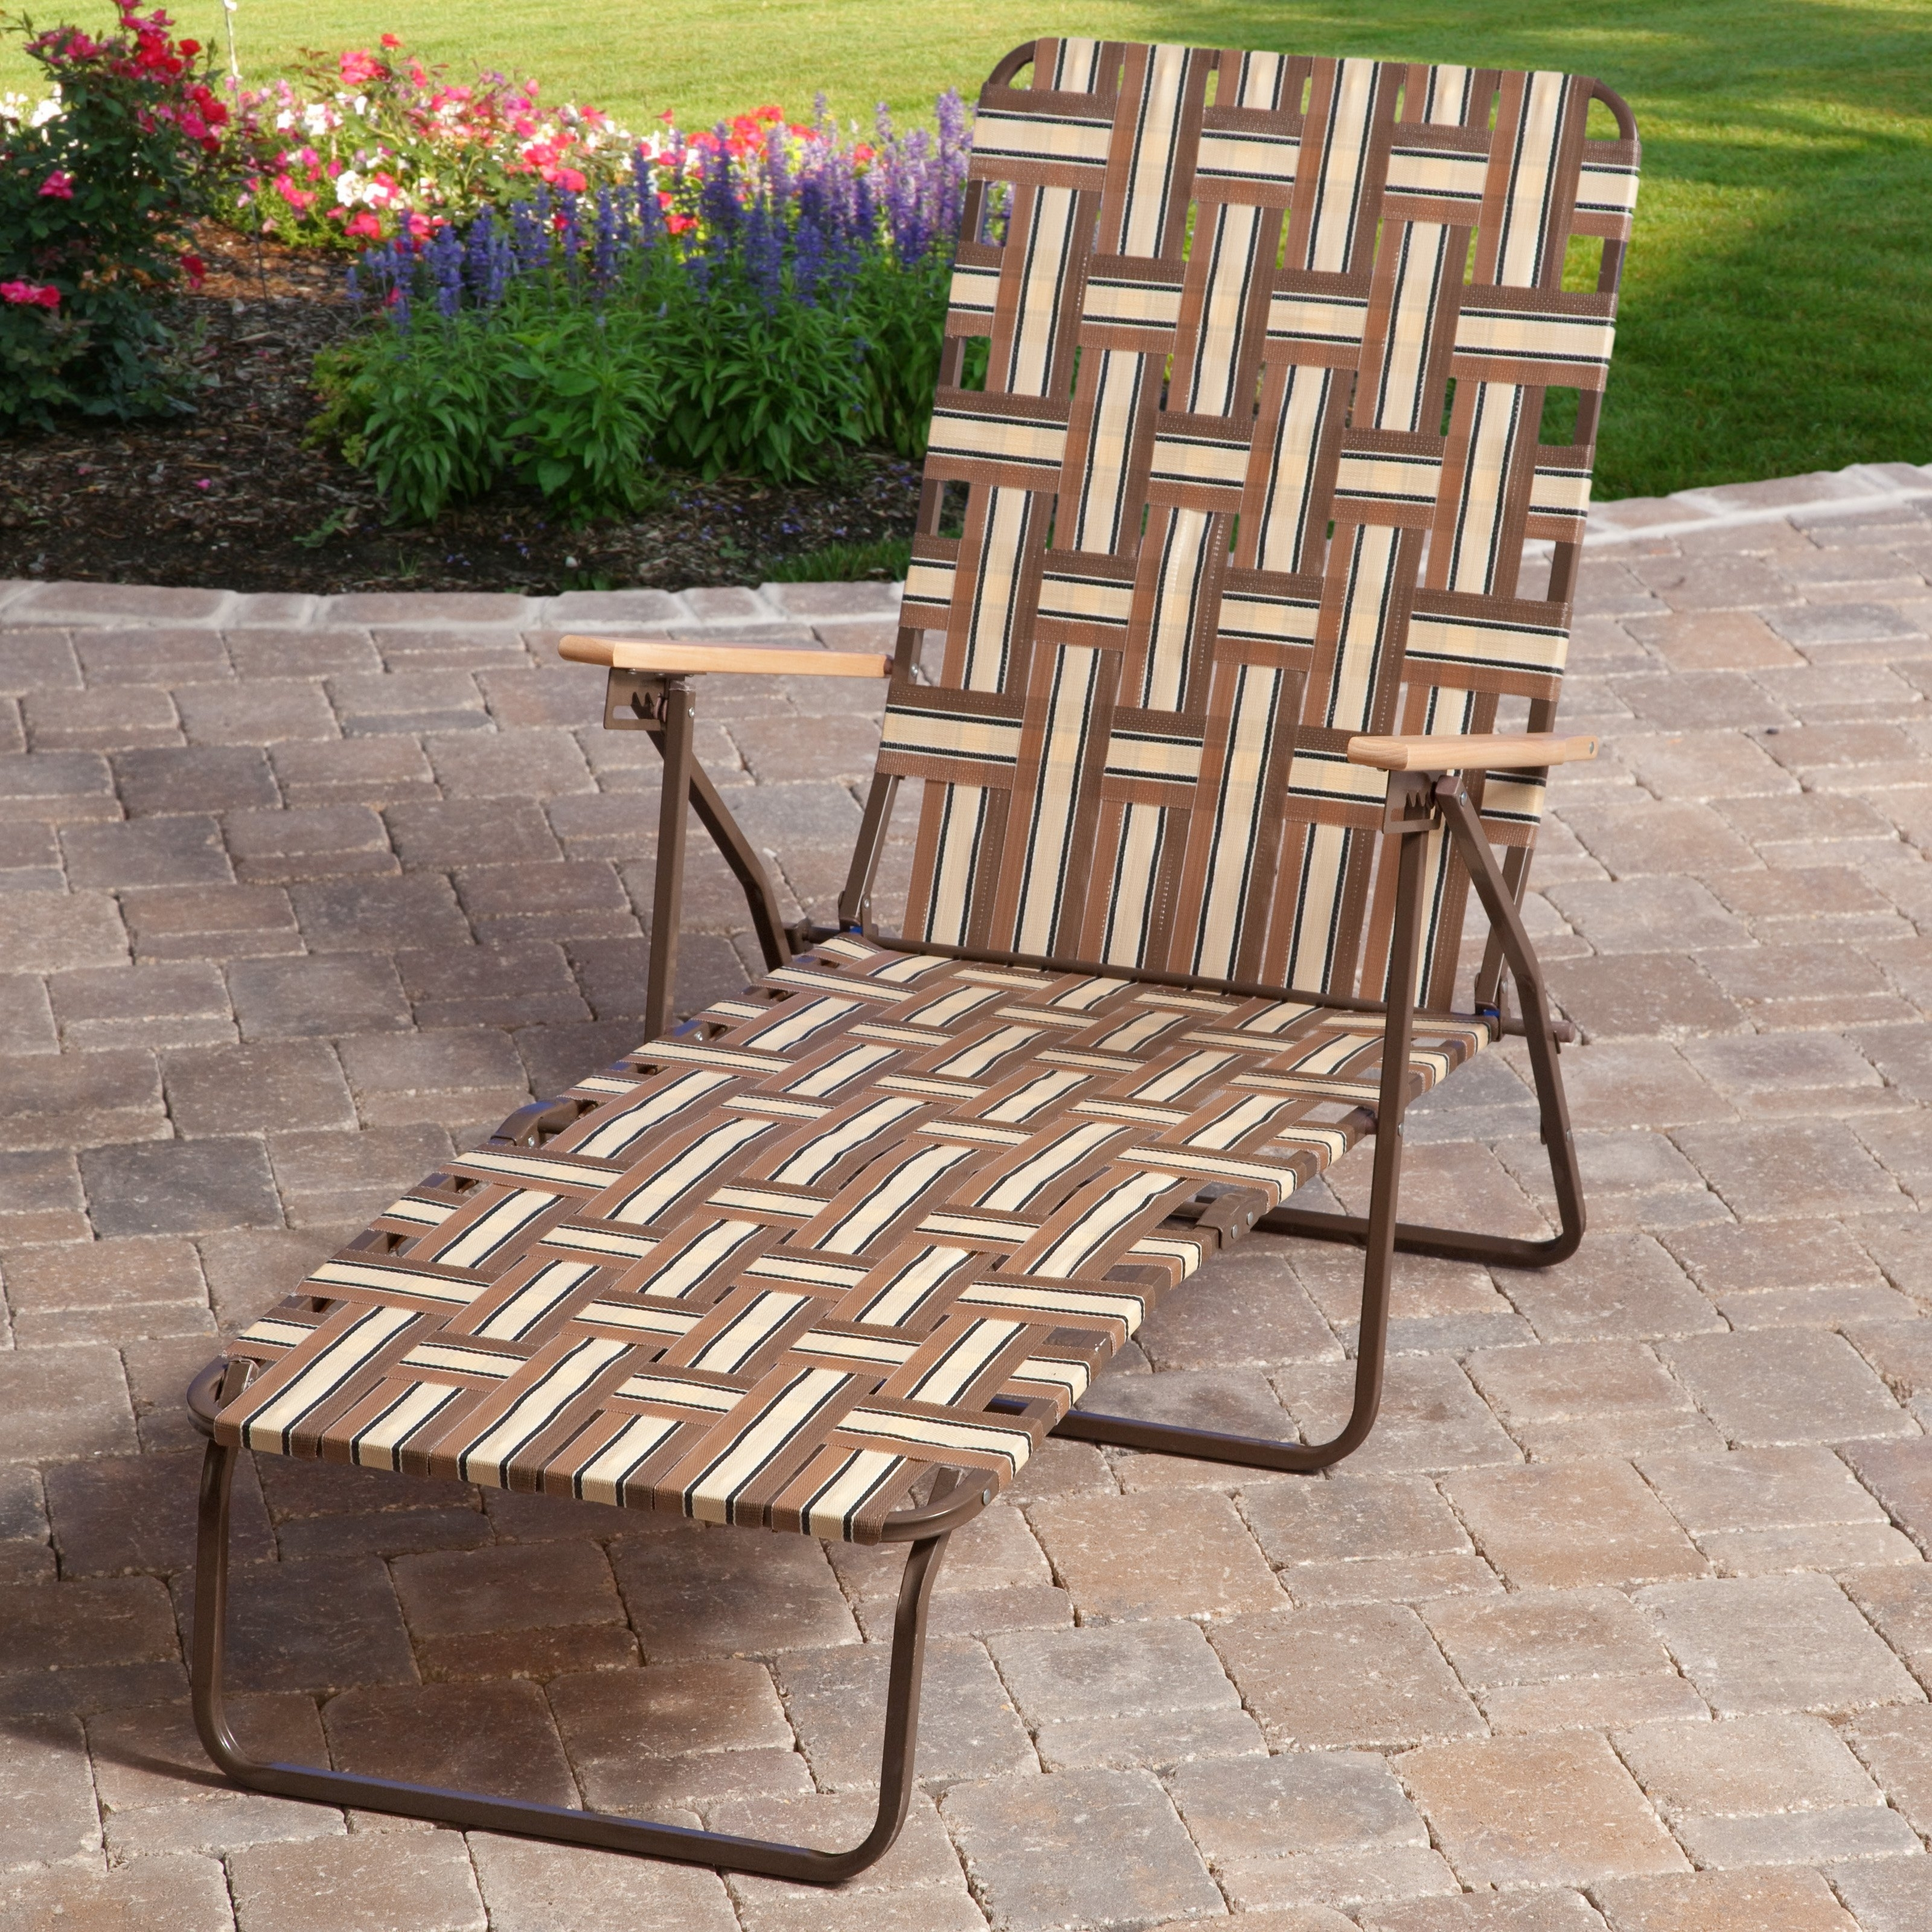 Well Liked Rio Deluxe Folding Web Chaise Lounge – Walmart Intended For Chaise Lounge Chairs At Walmart (View 4 of 15)